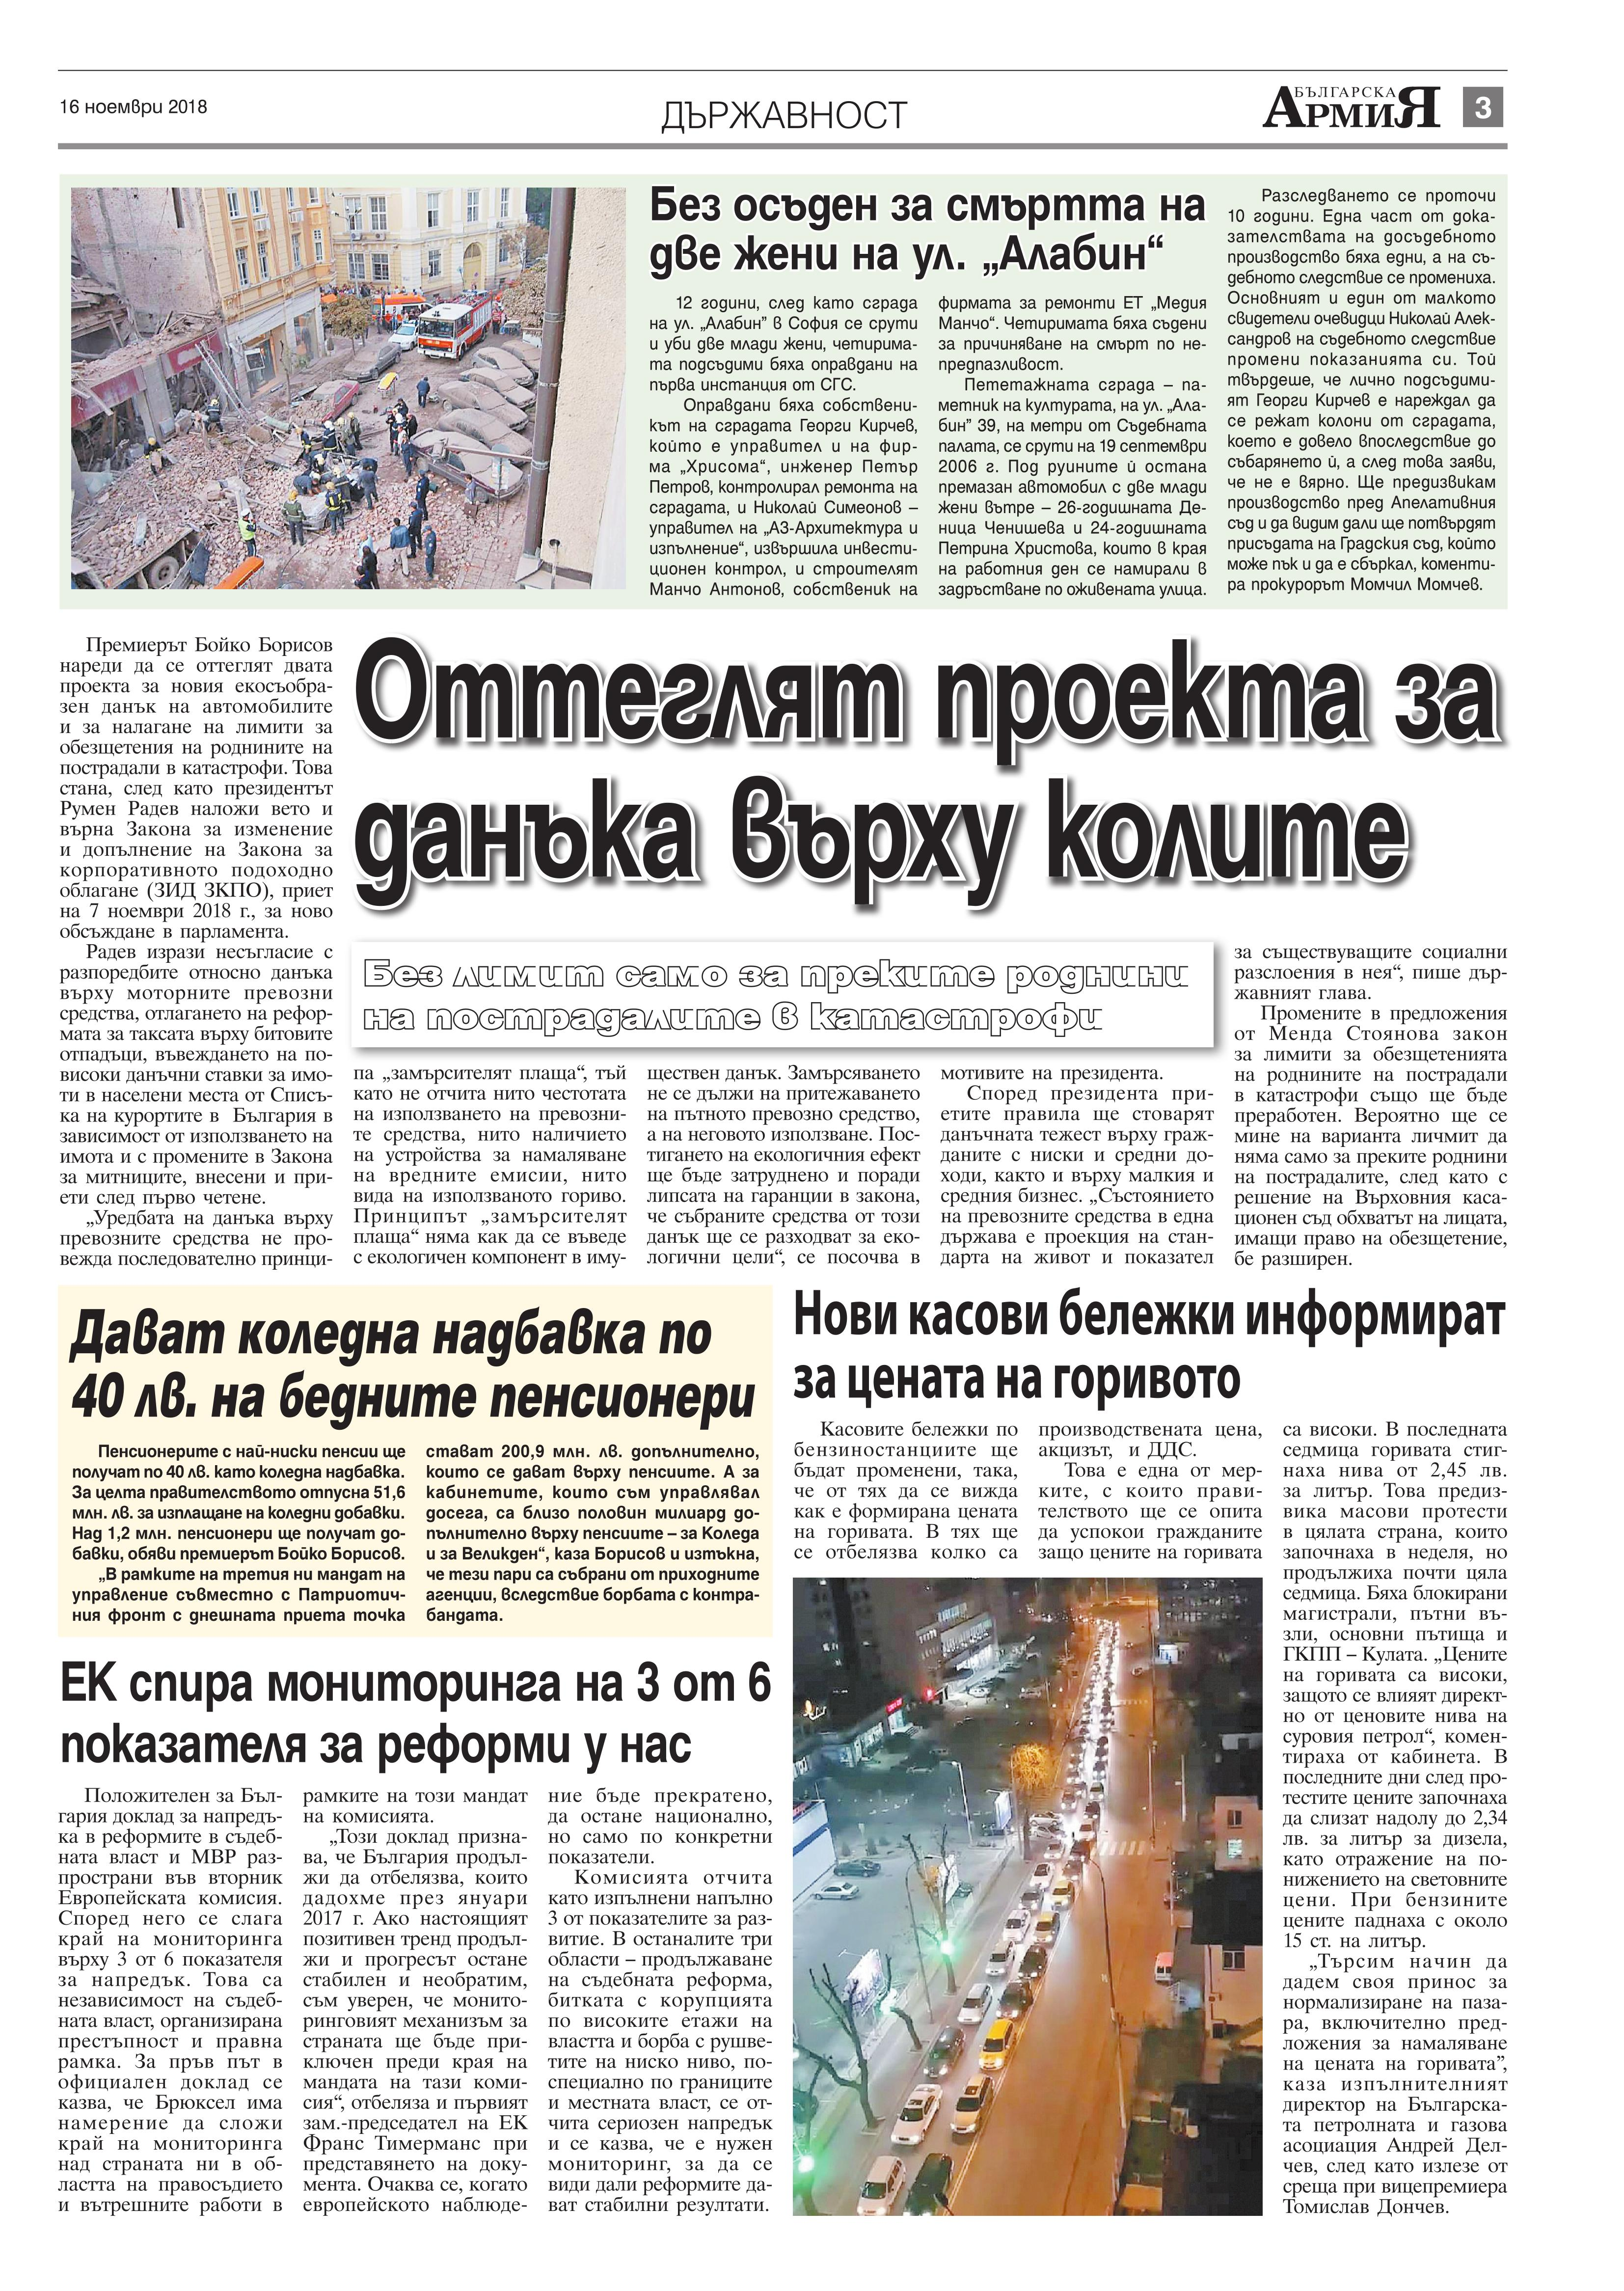 https://armymedia.bg/wp-content/uploads/2015/06/03.page1_-70.jpg